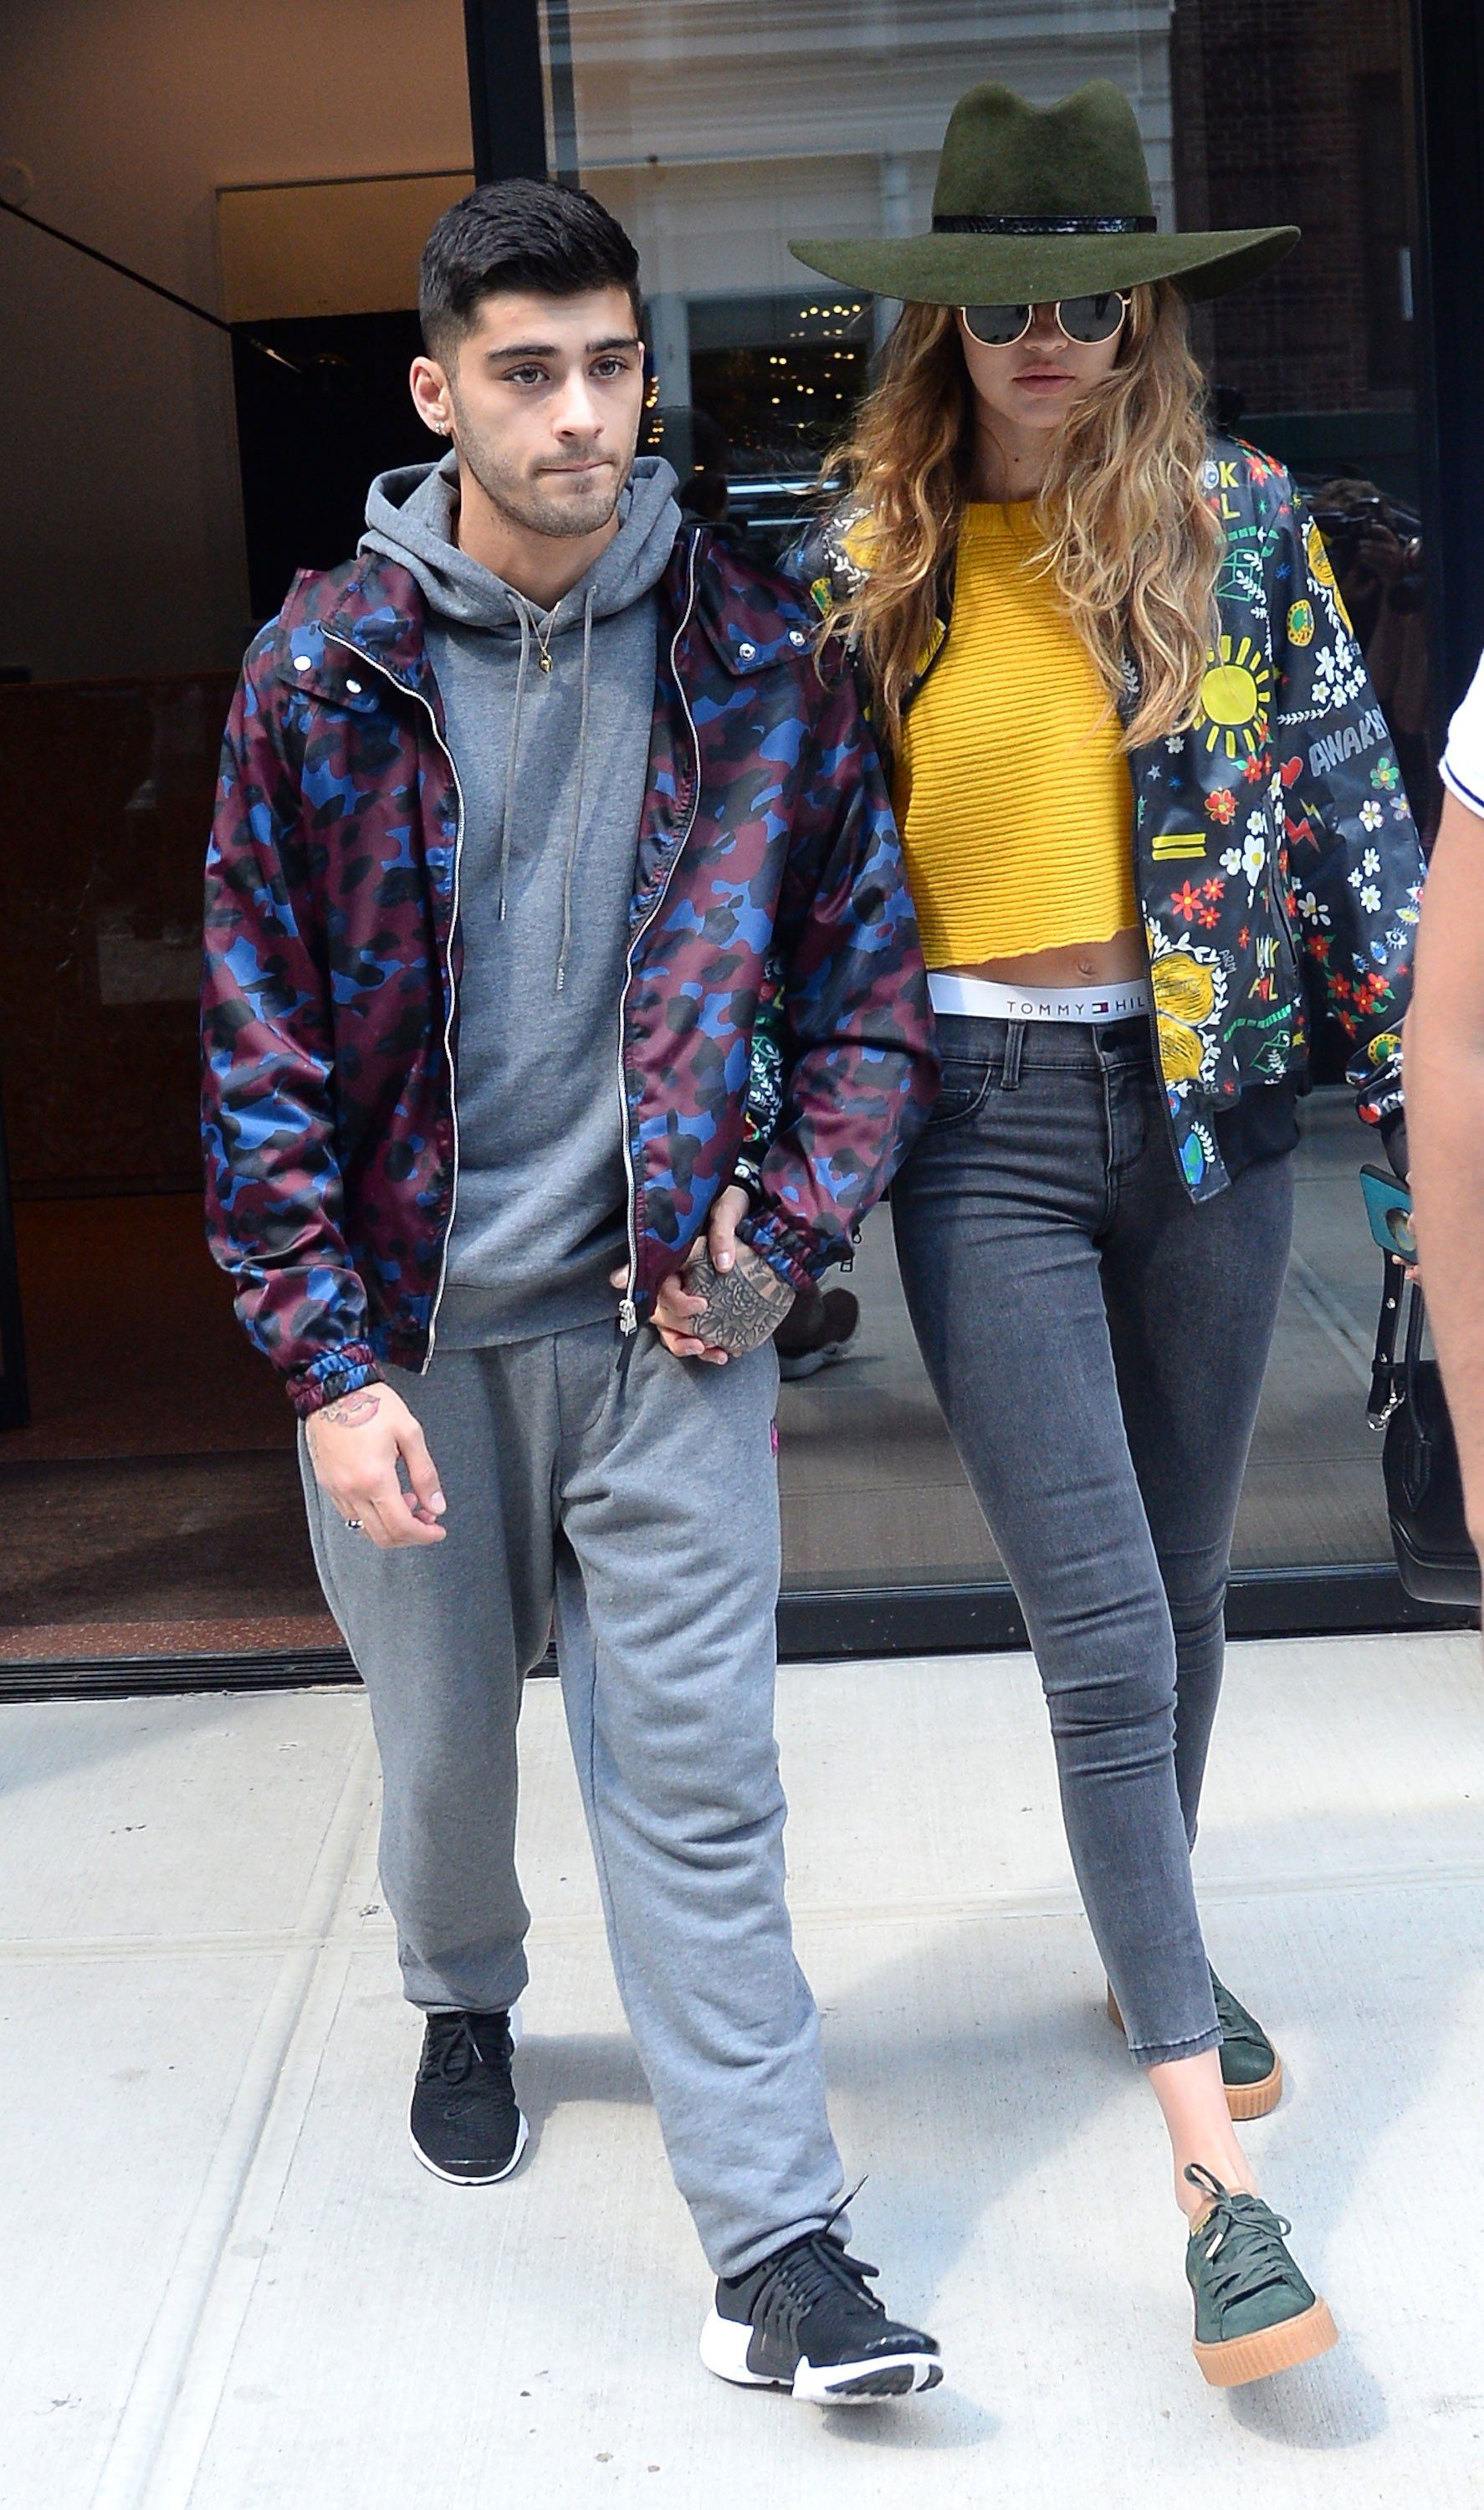 72629b6feb19 Gigi Hadid and Zayn Malik on the Vogue 2017 August Cover  See Their Best  Couple Fashion Moments